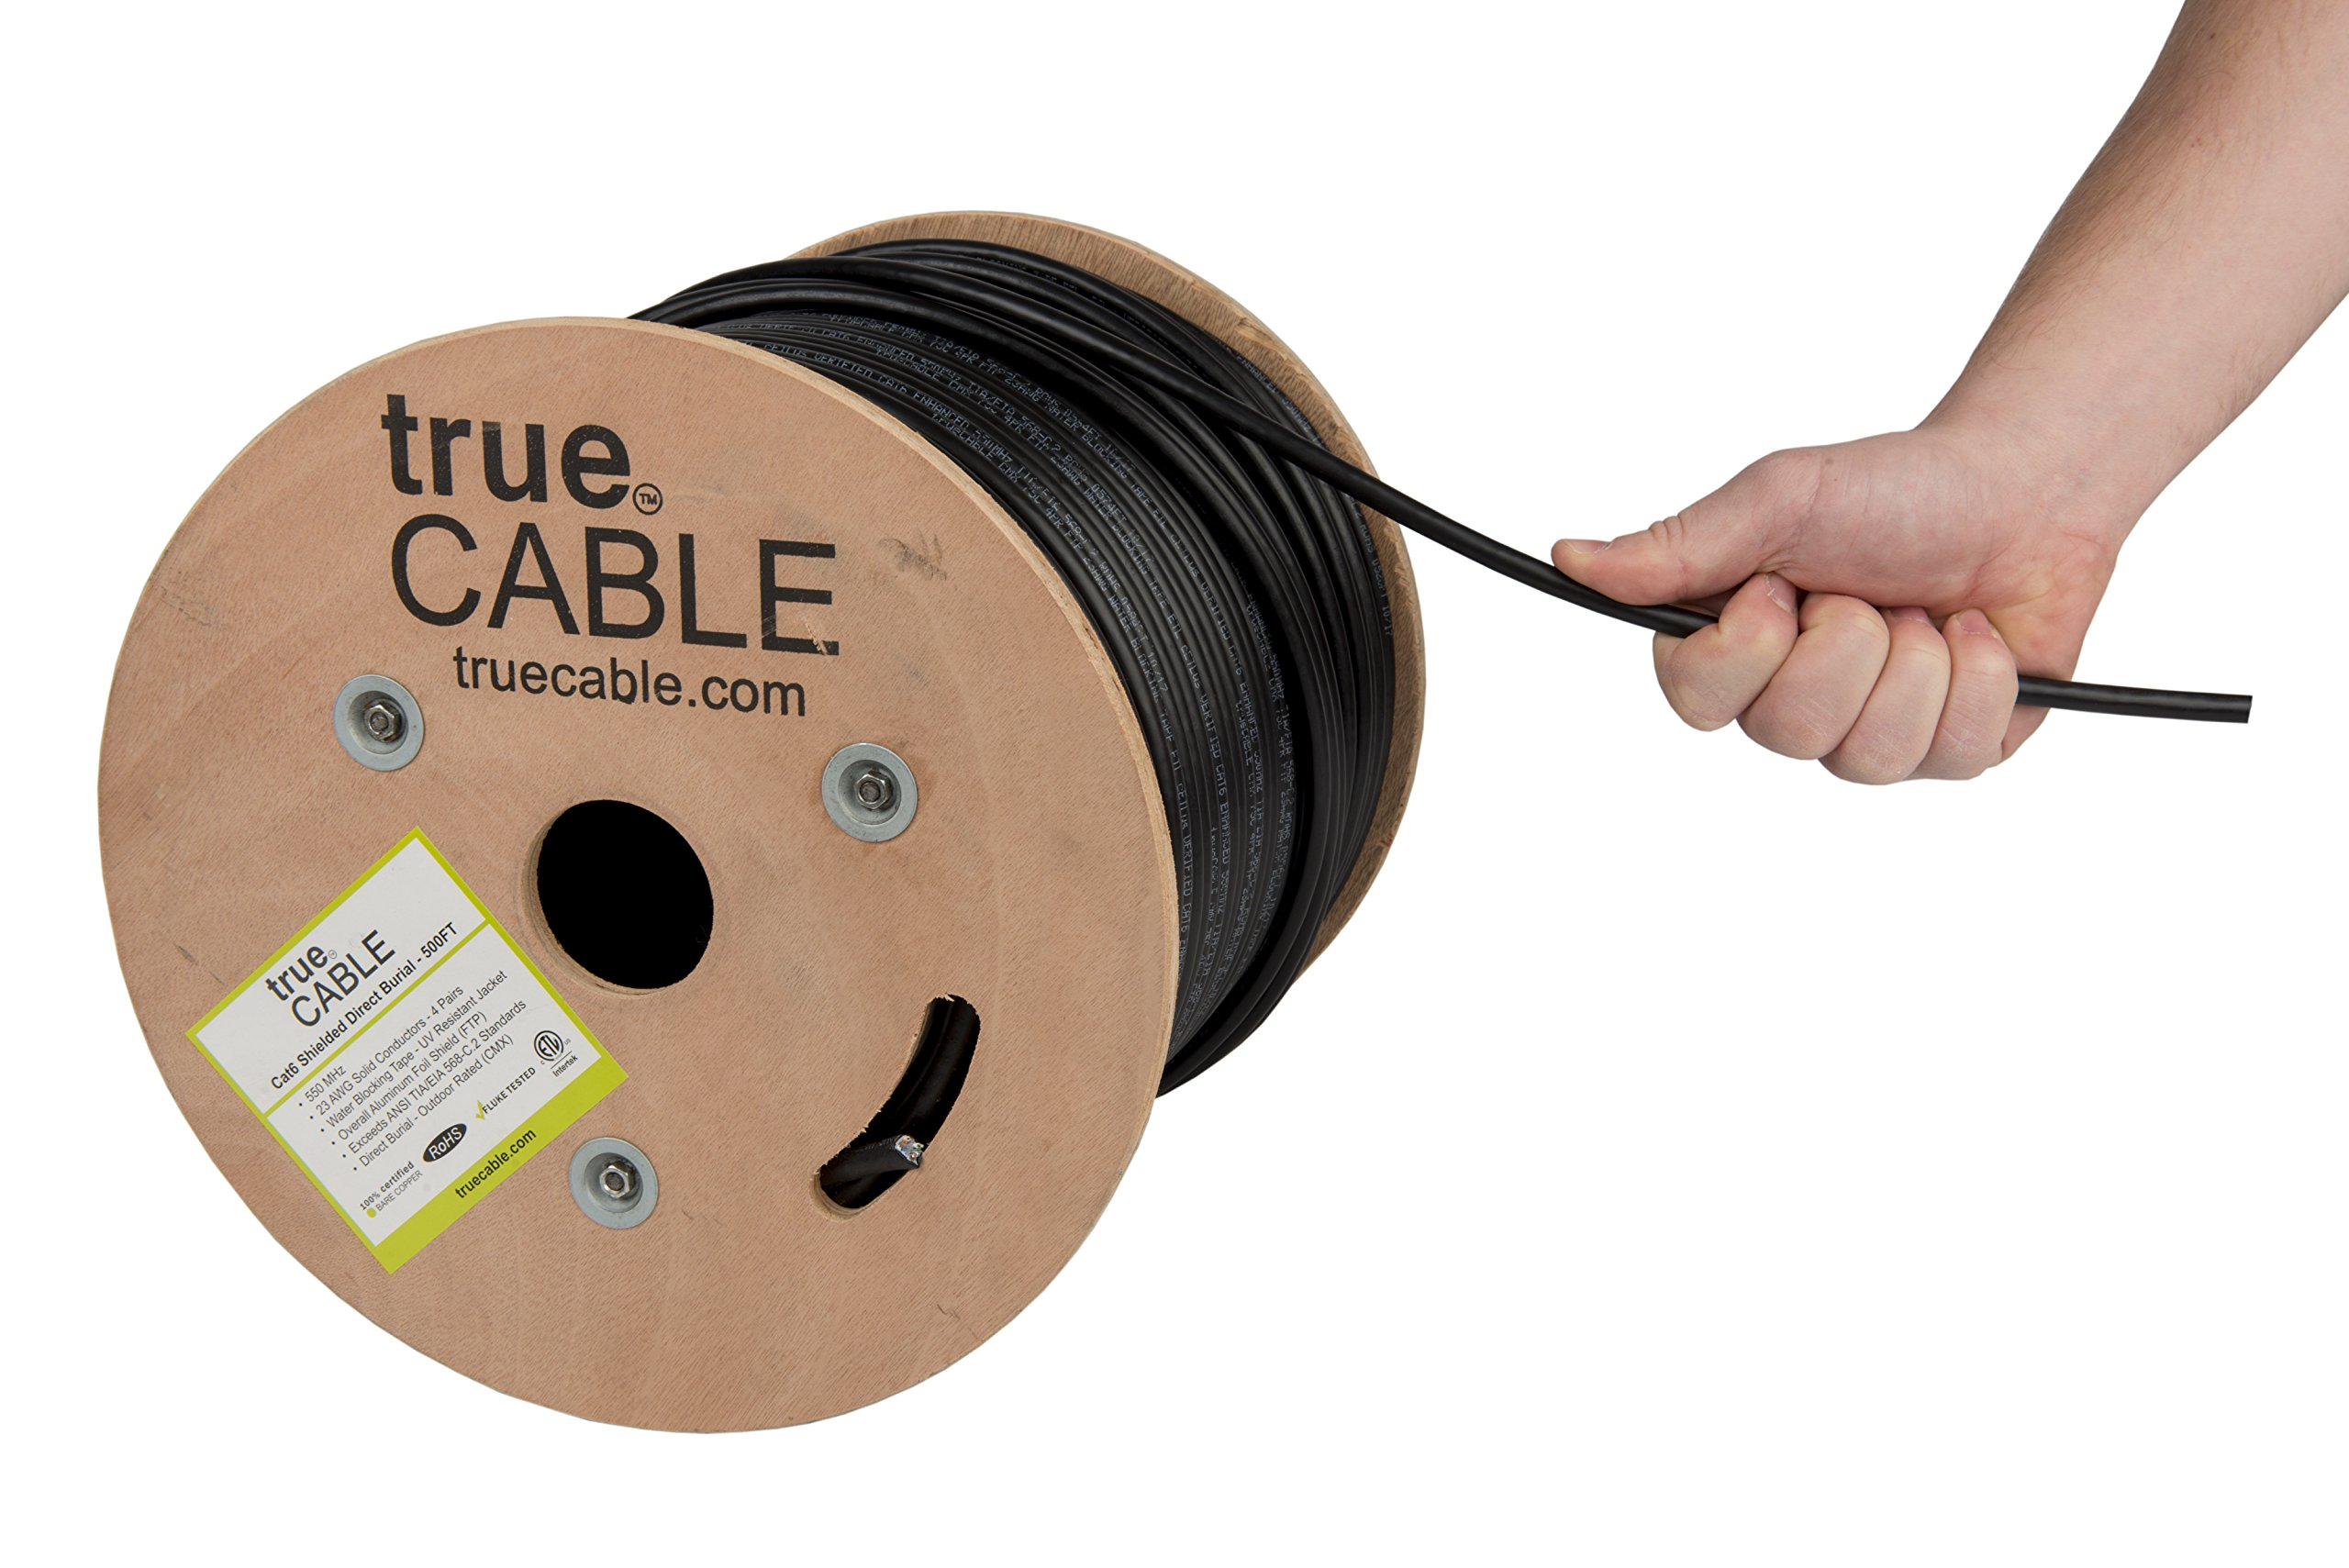 Cat6 Outdoor, Shielded - FTP, 500ft, Waterproof, Direct Burial Rated CMX, Solid Bare Copper Bulk Ethernet Cable, 550MHz, ETL Listed, Black, trueCABLE by trueCABLE